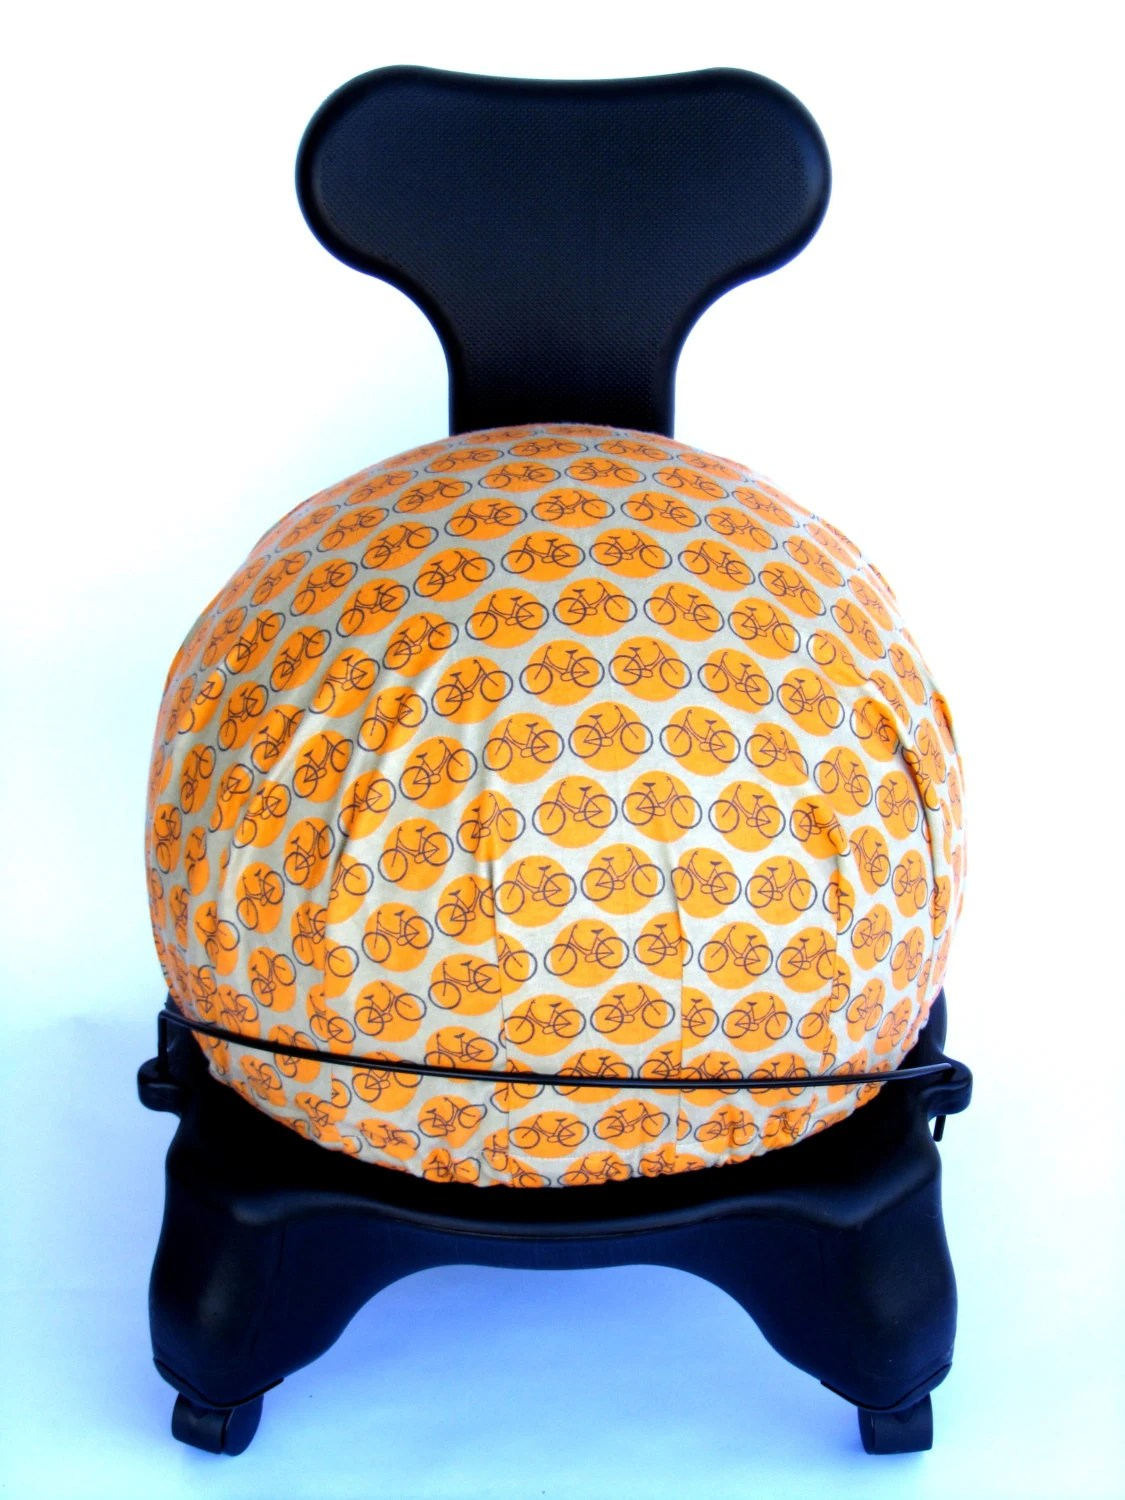 Gaiam Balance Ball Chair Gaiam Balance Ball Chair Cover Fitball Chair By